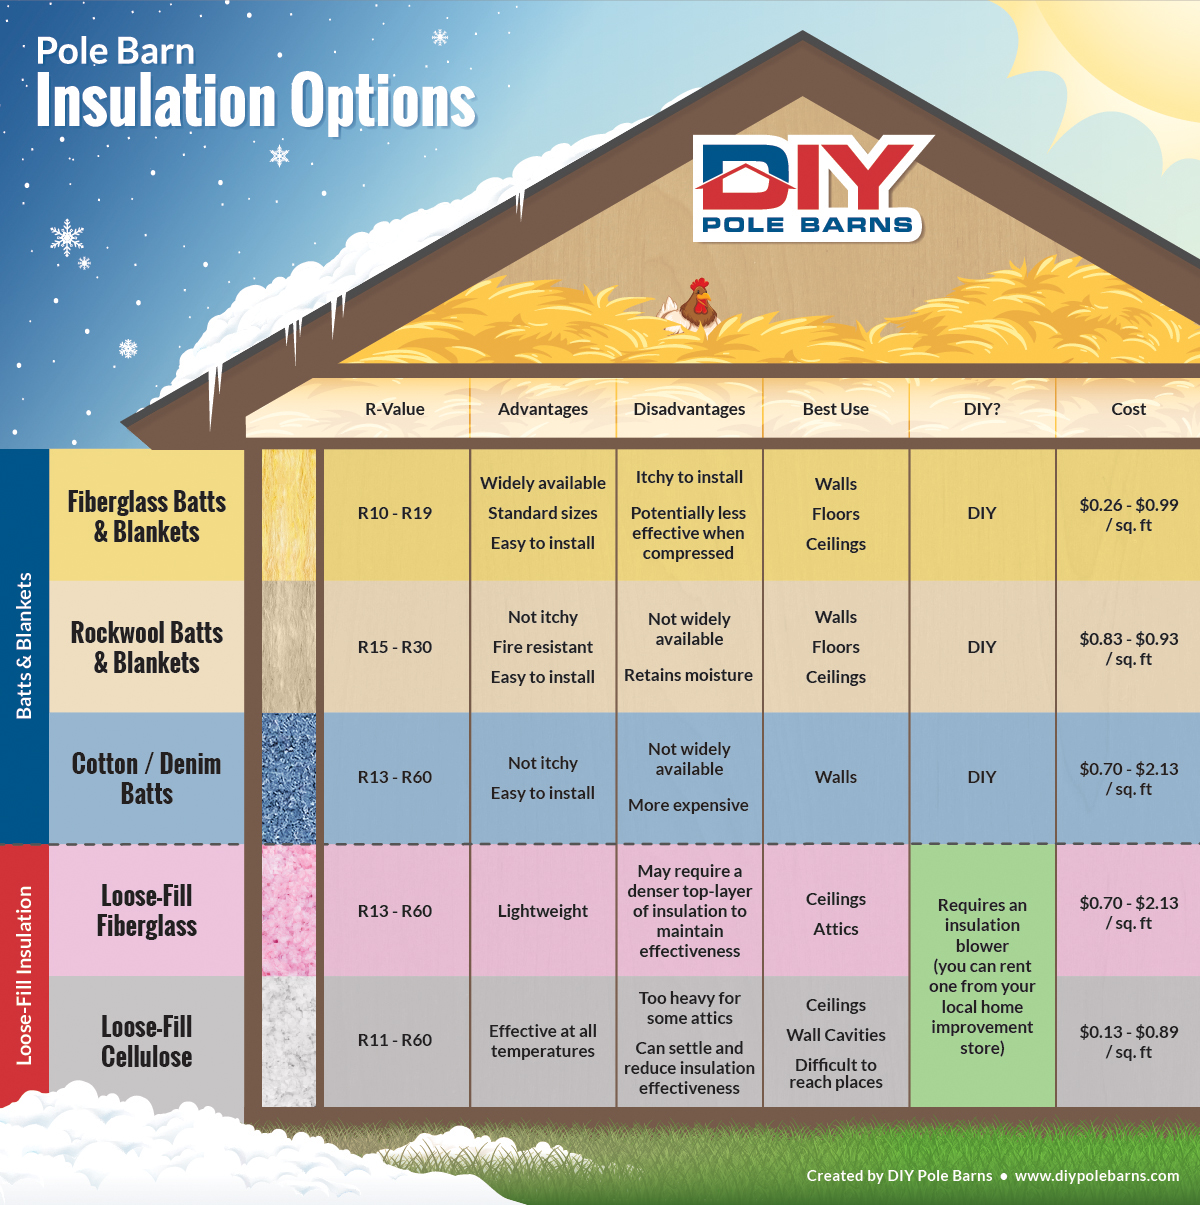 Pole Barn Insulation Diy Pole Barns